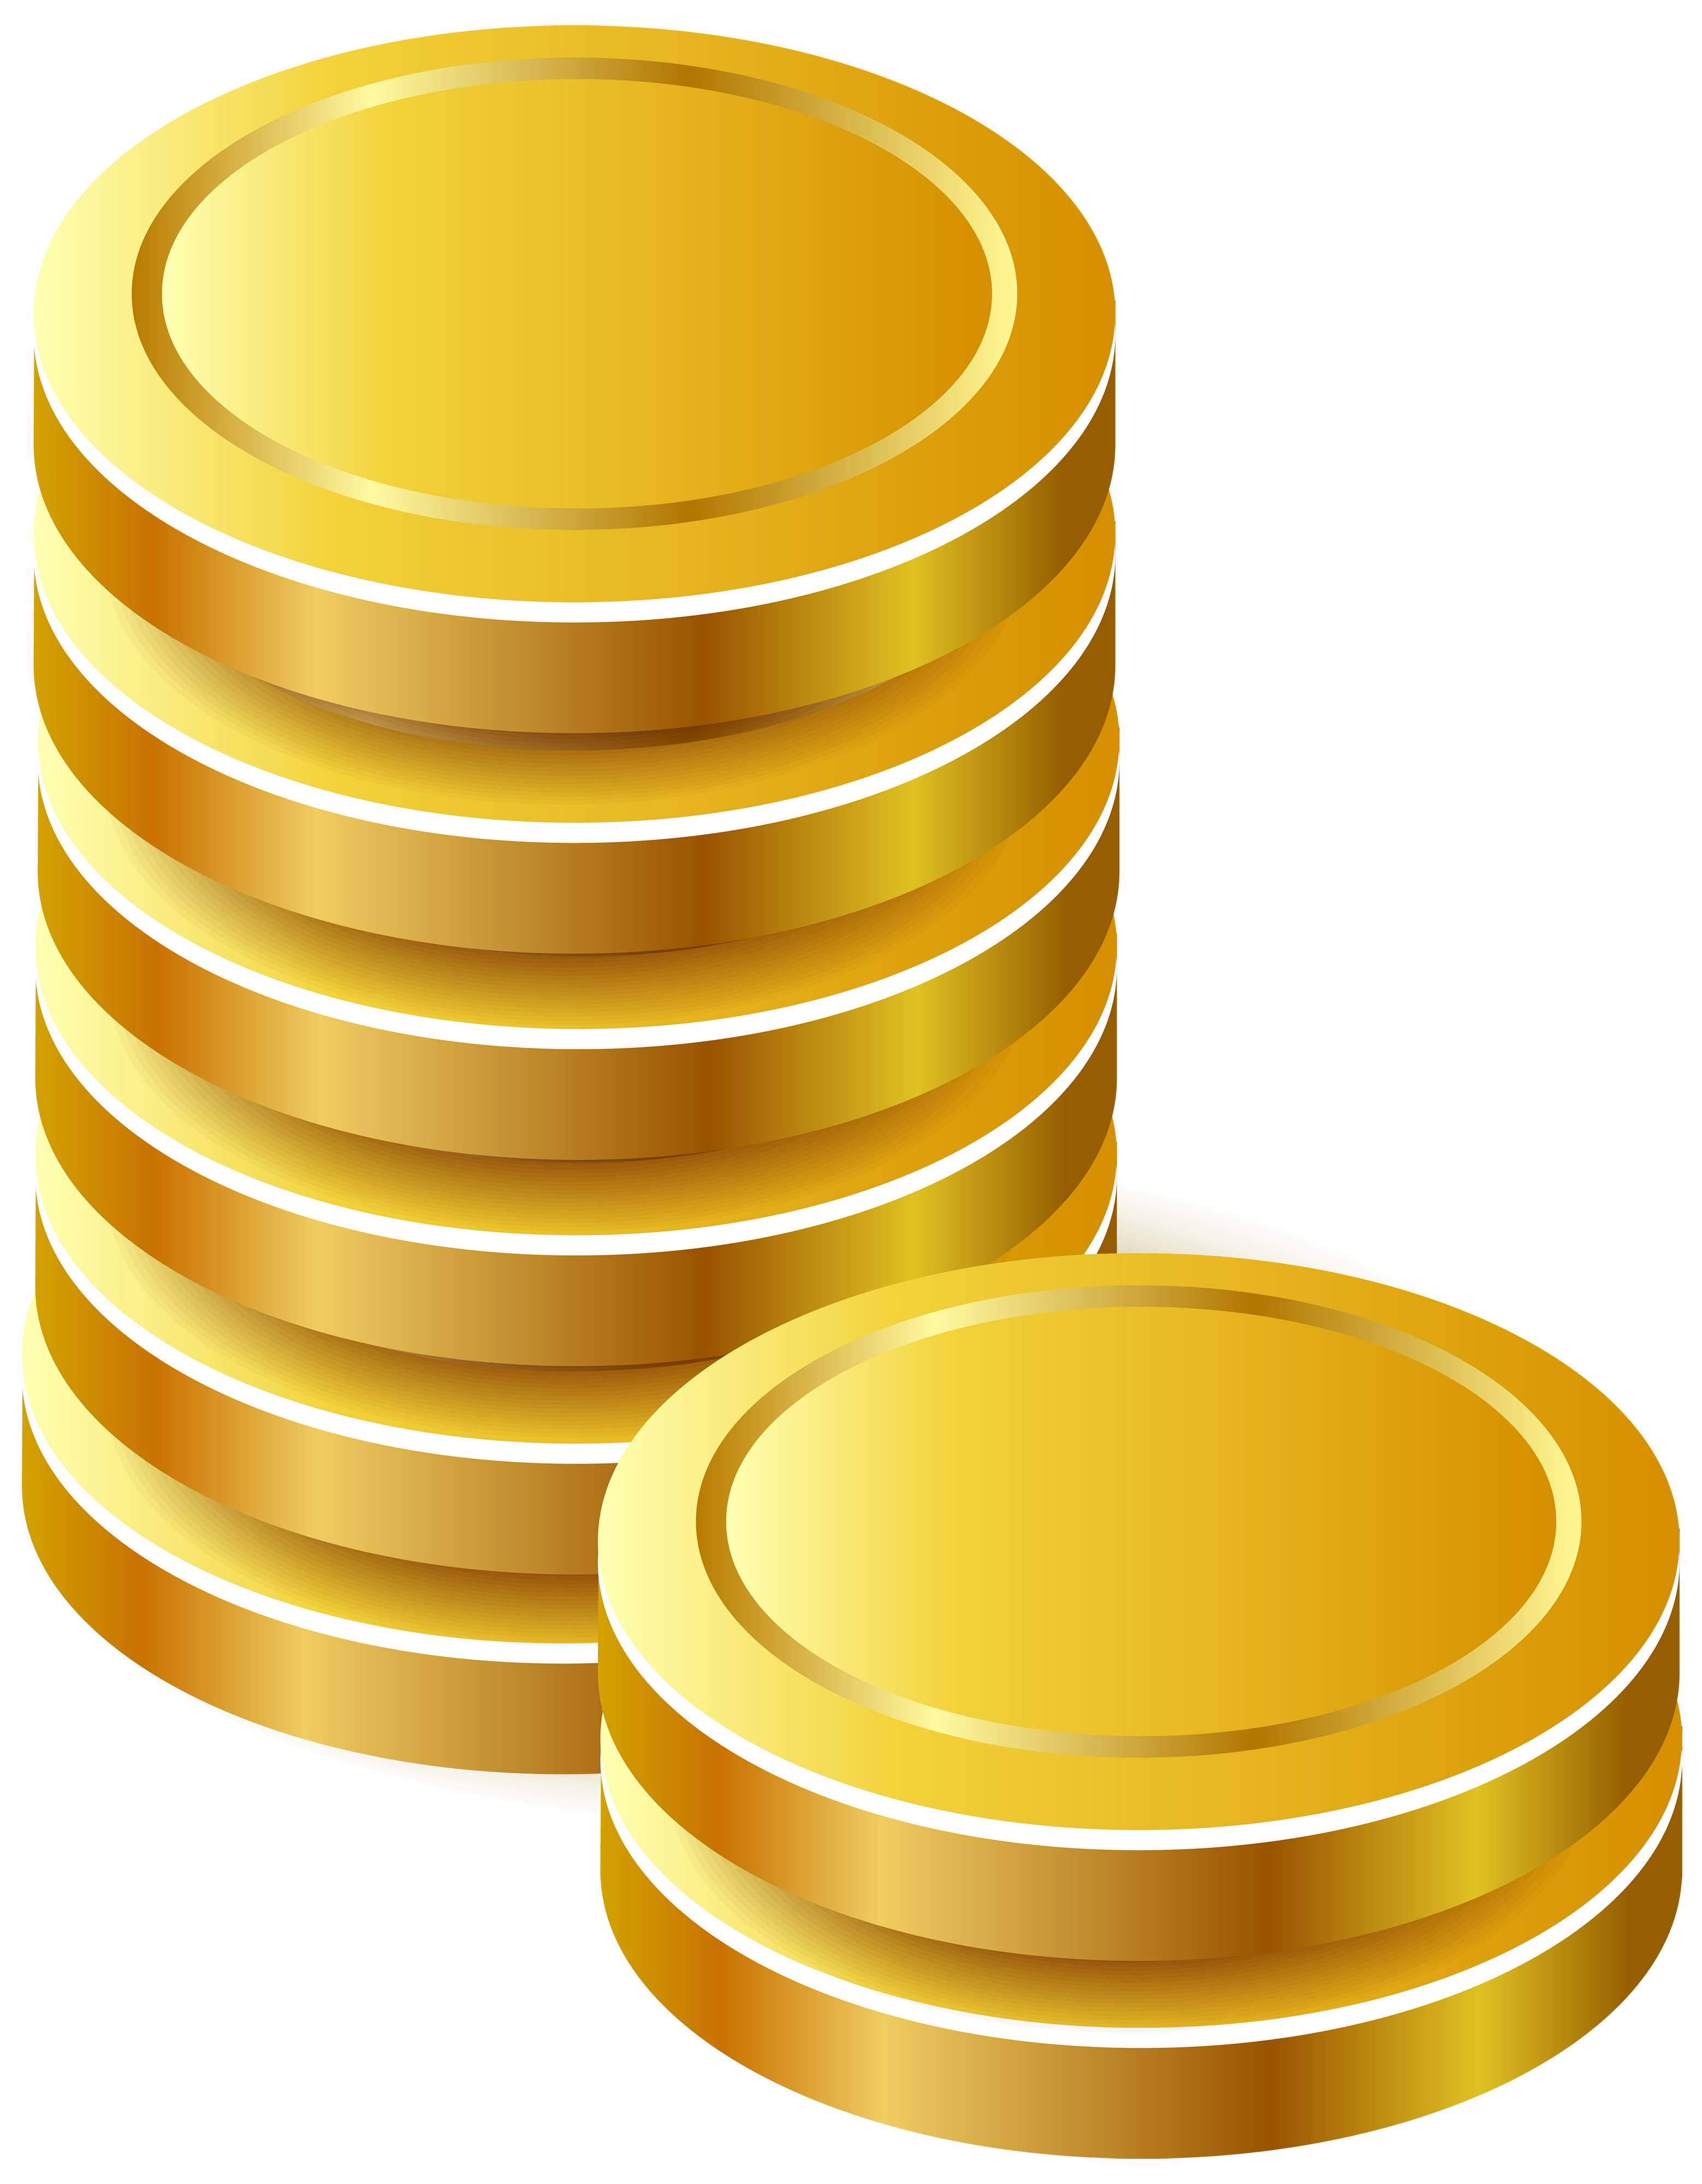 Gold money chain clipart with transparent backound graphic freeuse stock Gold Coins PNG Clipart - Best WEB Clipart graphic freeuse stock